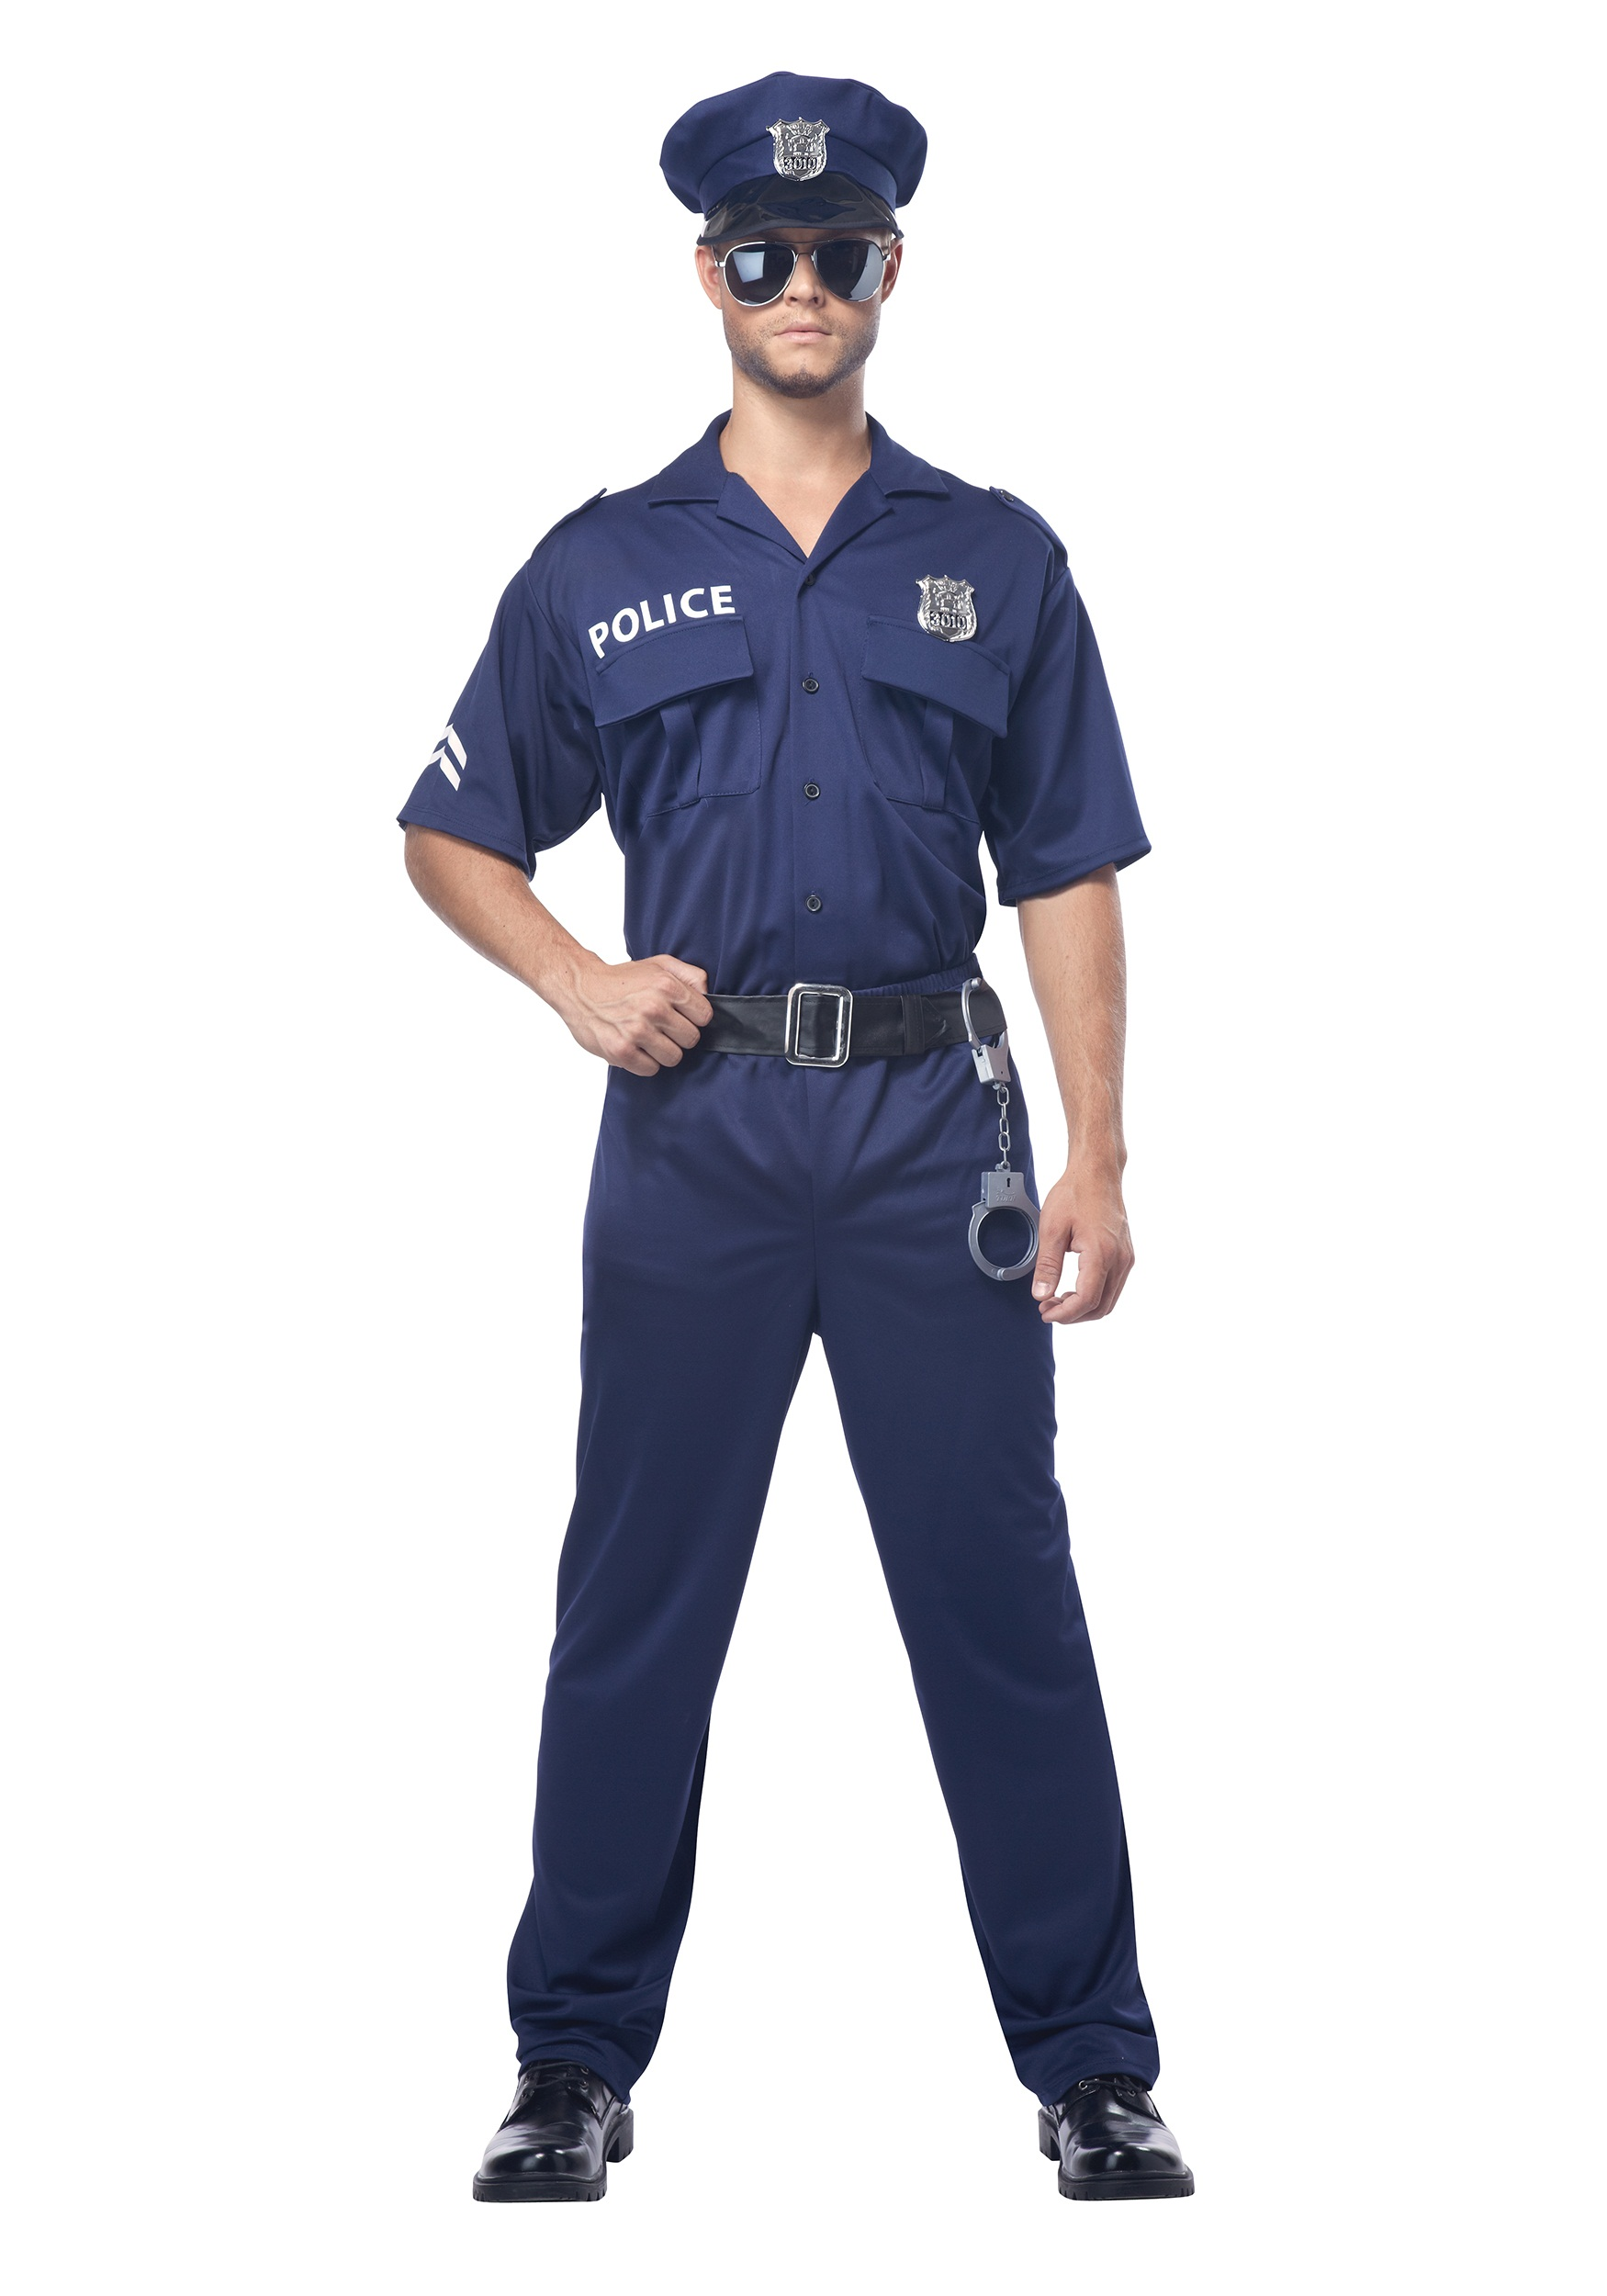 Adult Cop Costume  sc 1 st  Halloween Costume : adult cop costume  - Germanpascual.Com